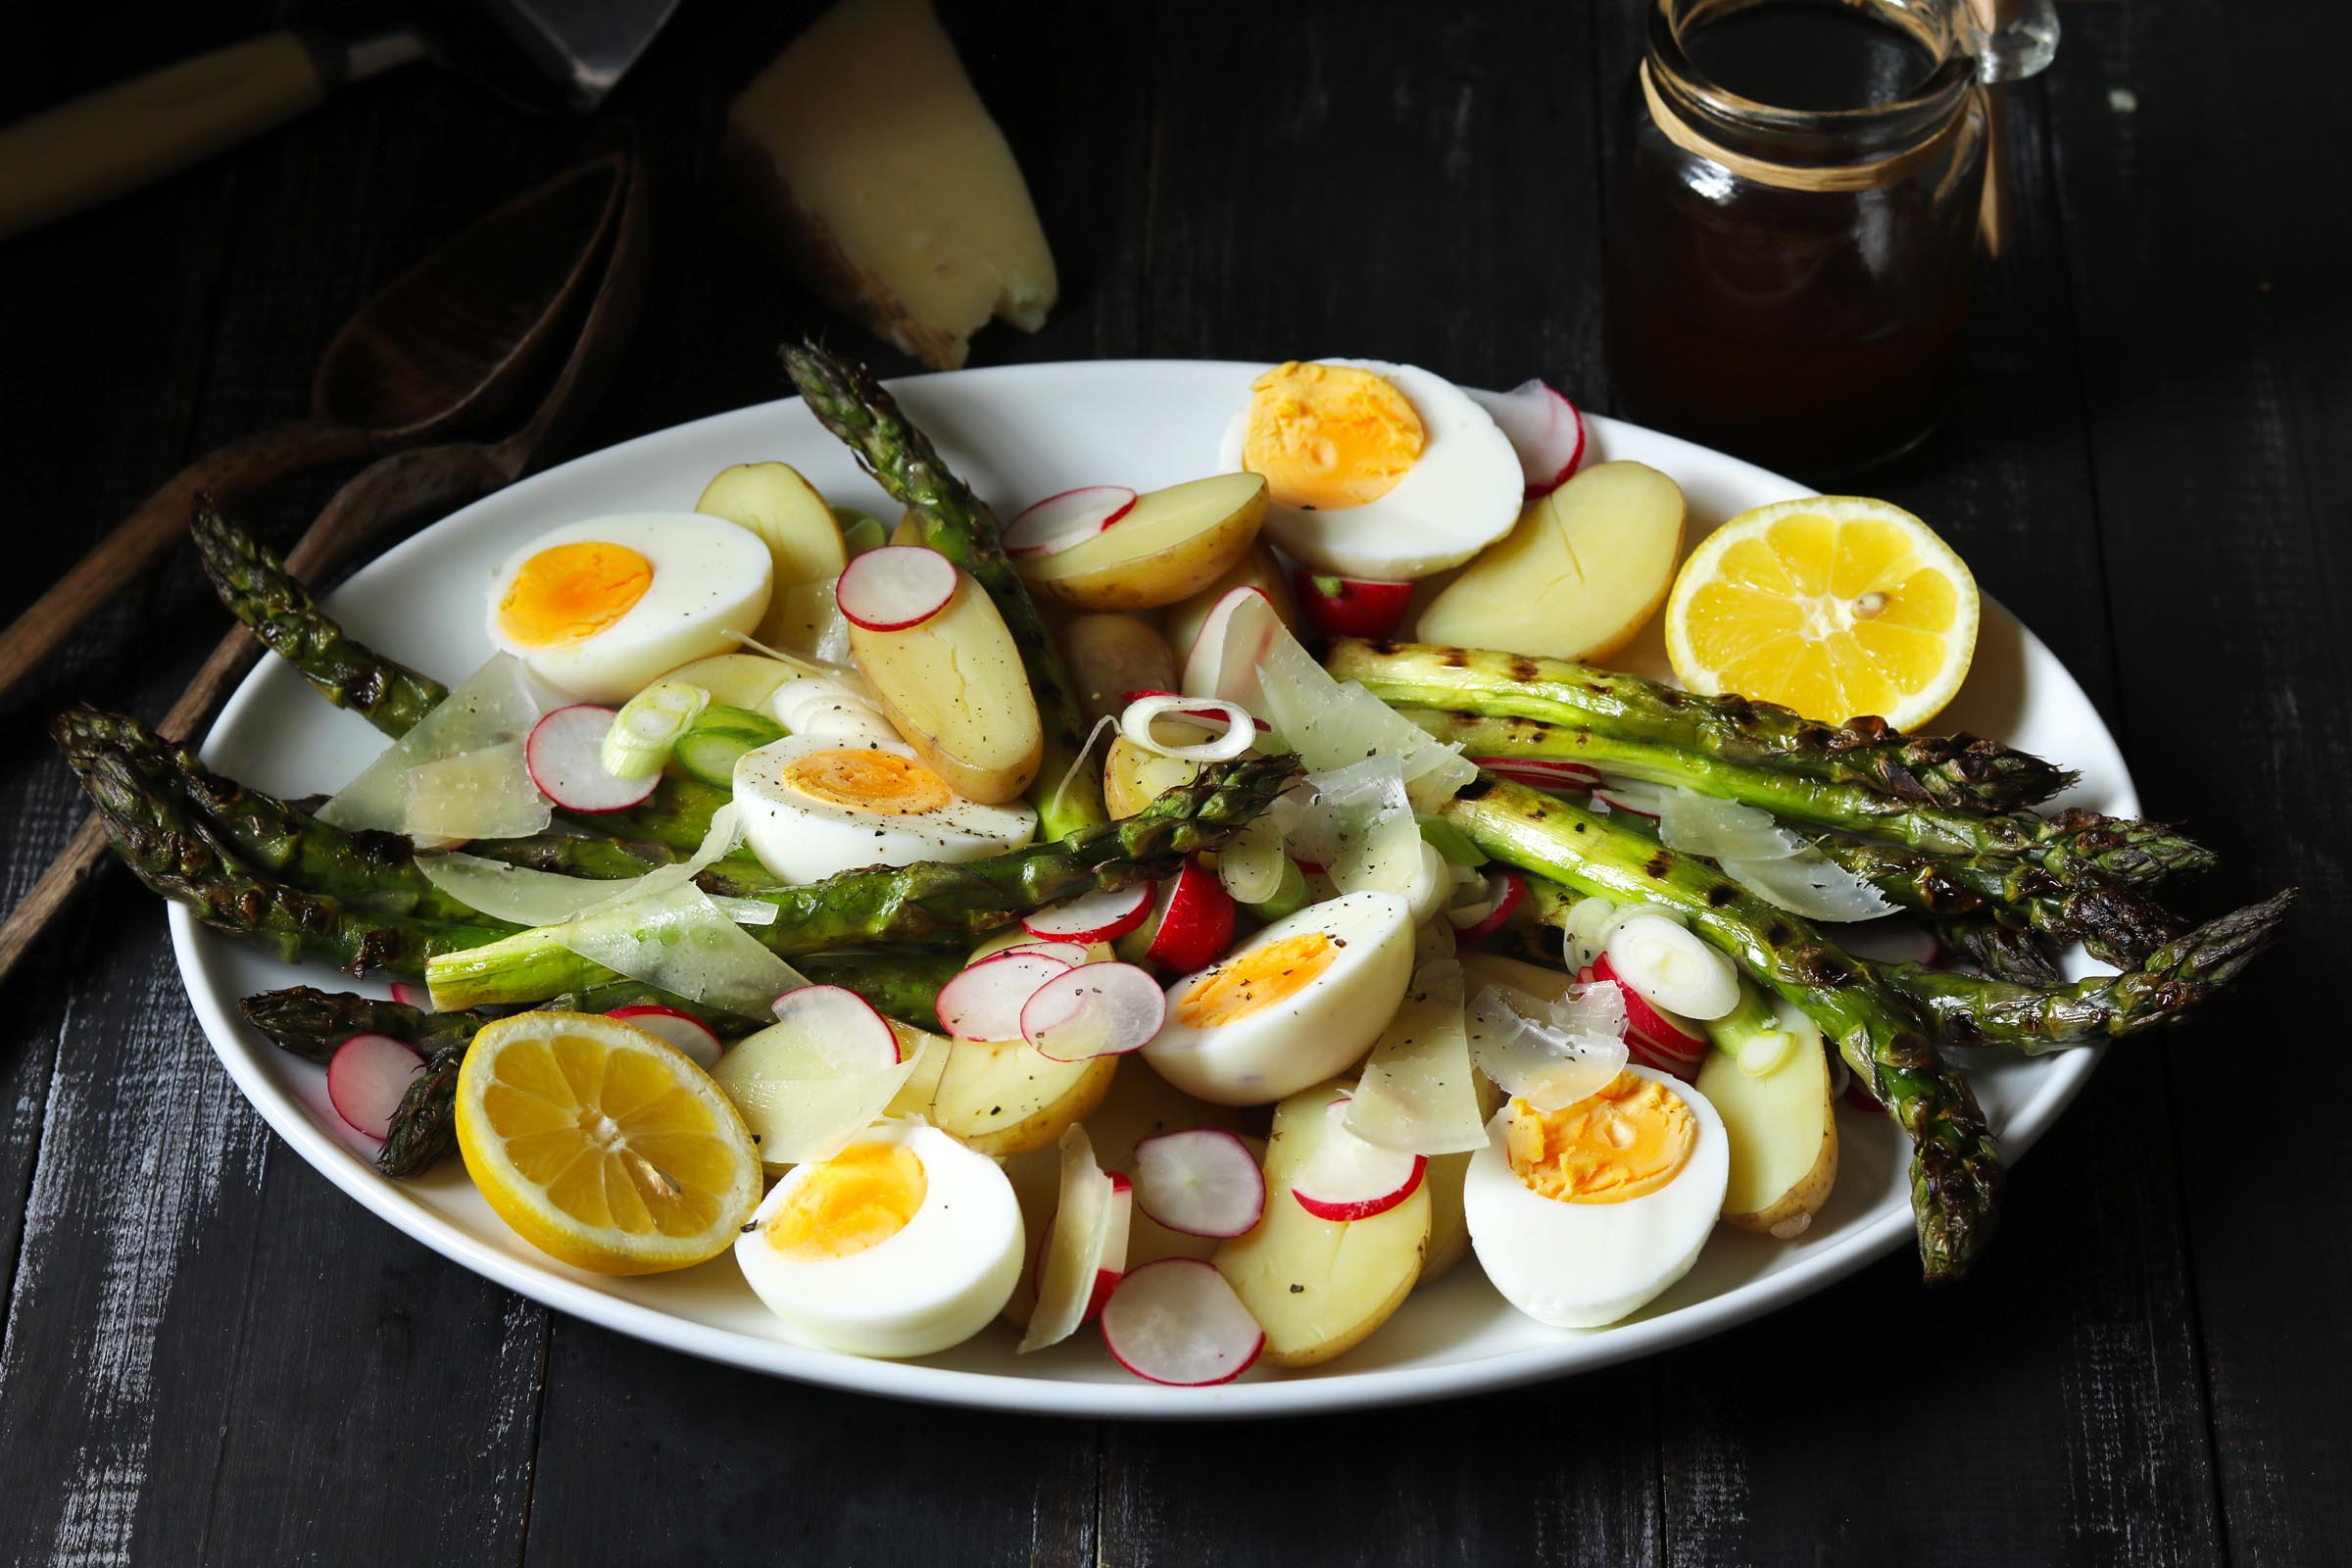 Chargrilled Asparagus Salad with Balsamic Vinaigrette